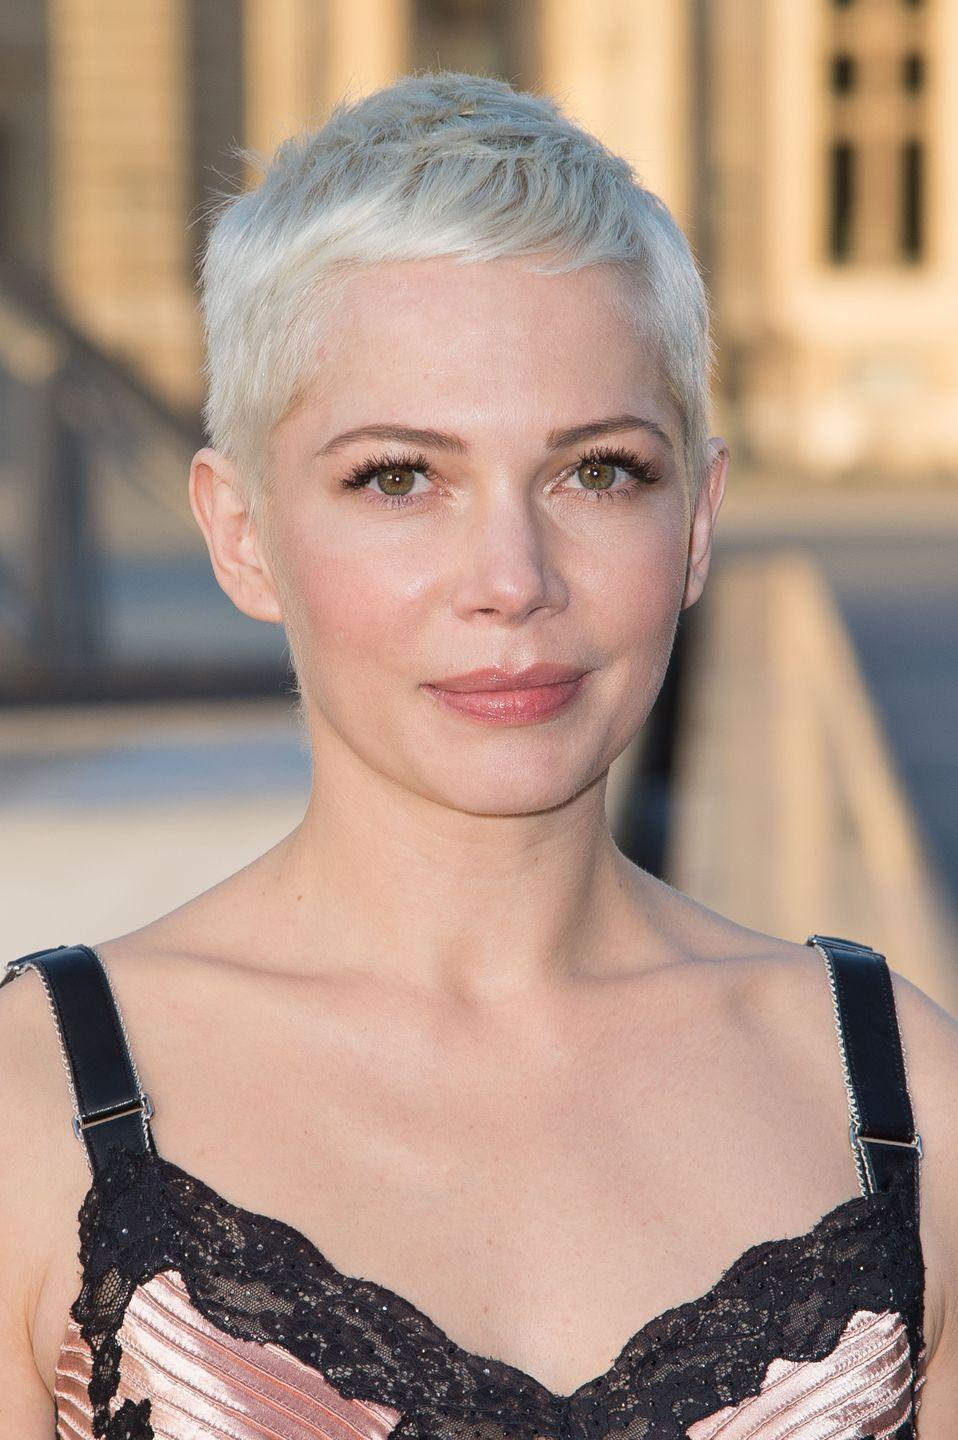 <p>Michelle Williams took her signature pixie cut shorter and blonder, with wispy bangs brushed along her forehead. </p>